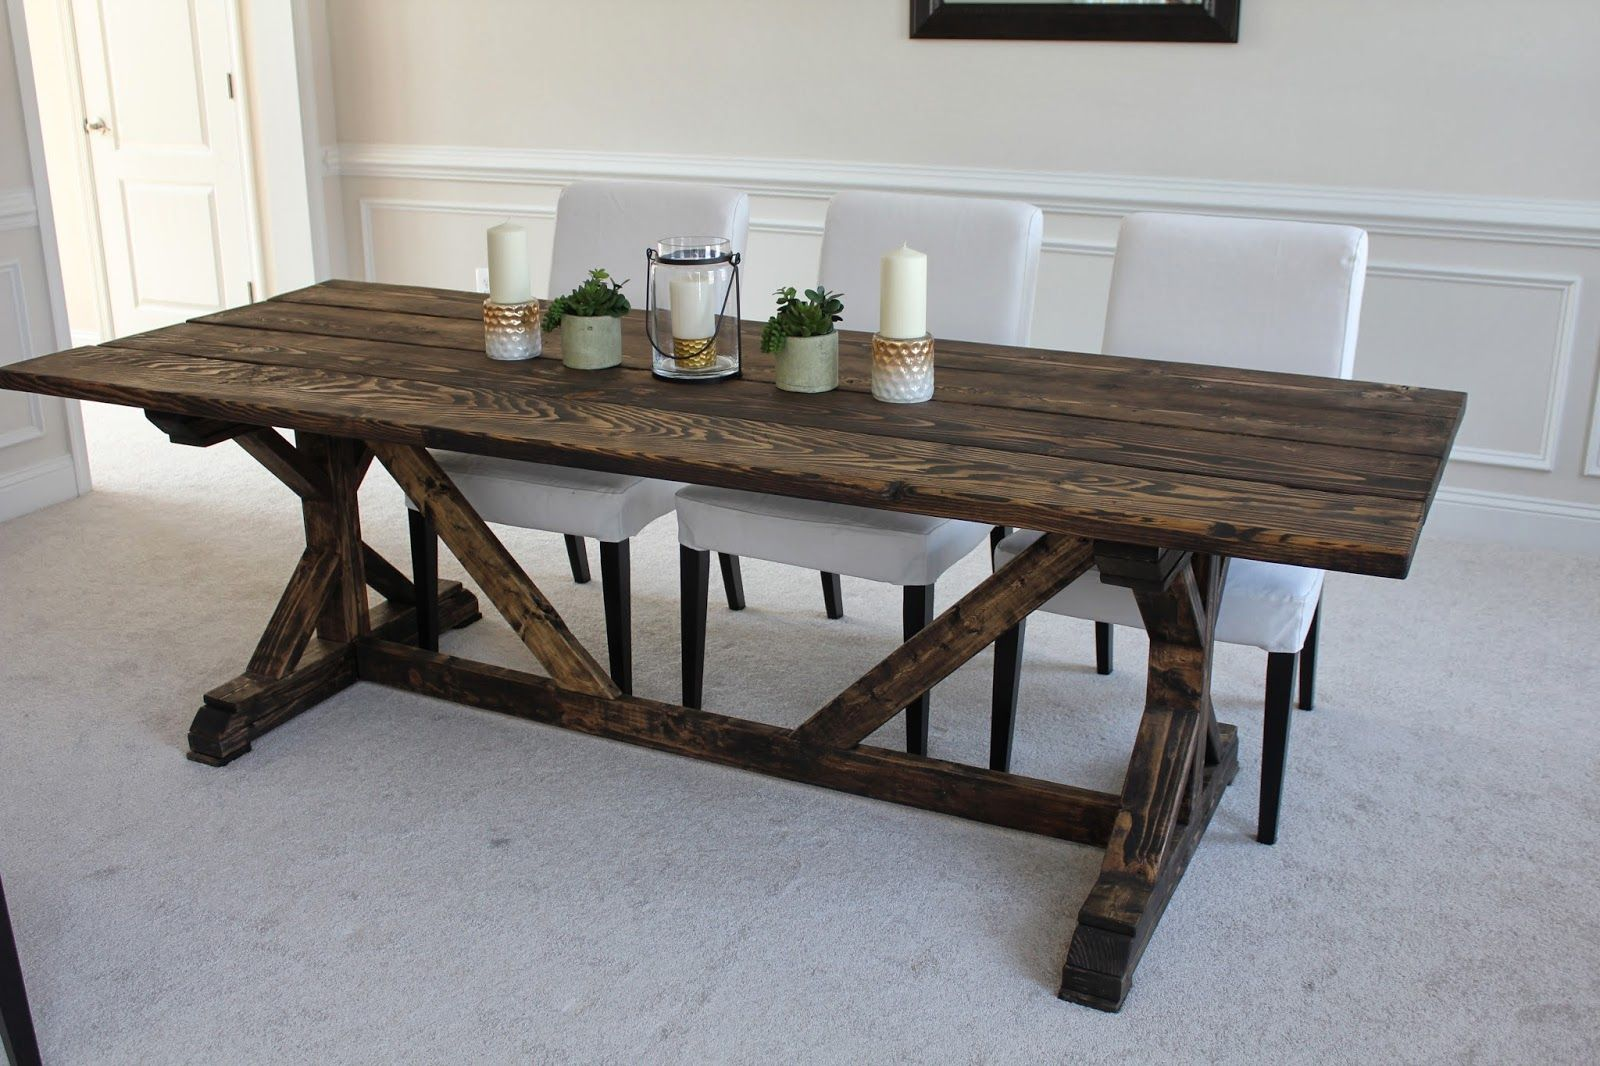 wooden farmhouse table plans diy blueprints farmhouse